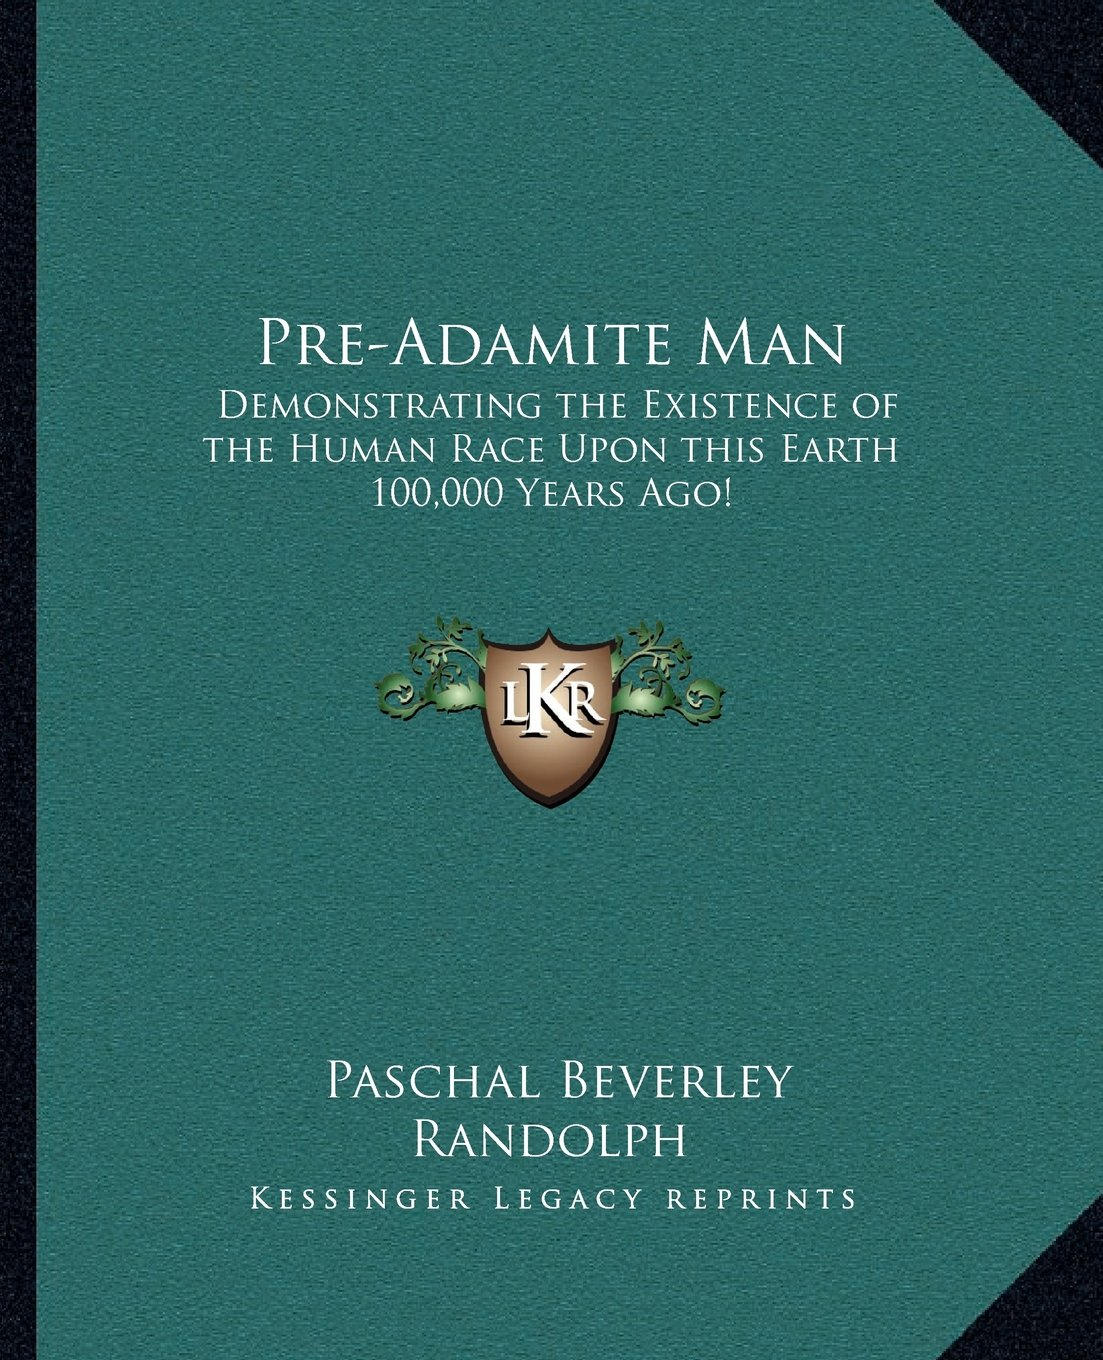 Pre-Adamite Man: Demonstrating the Existence of the Human Race Upon this Earth 100,000 Years Ago! pdf epub